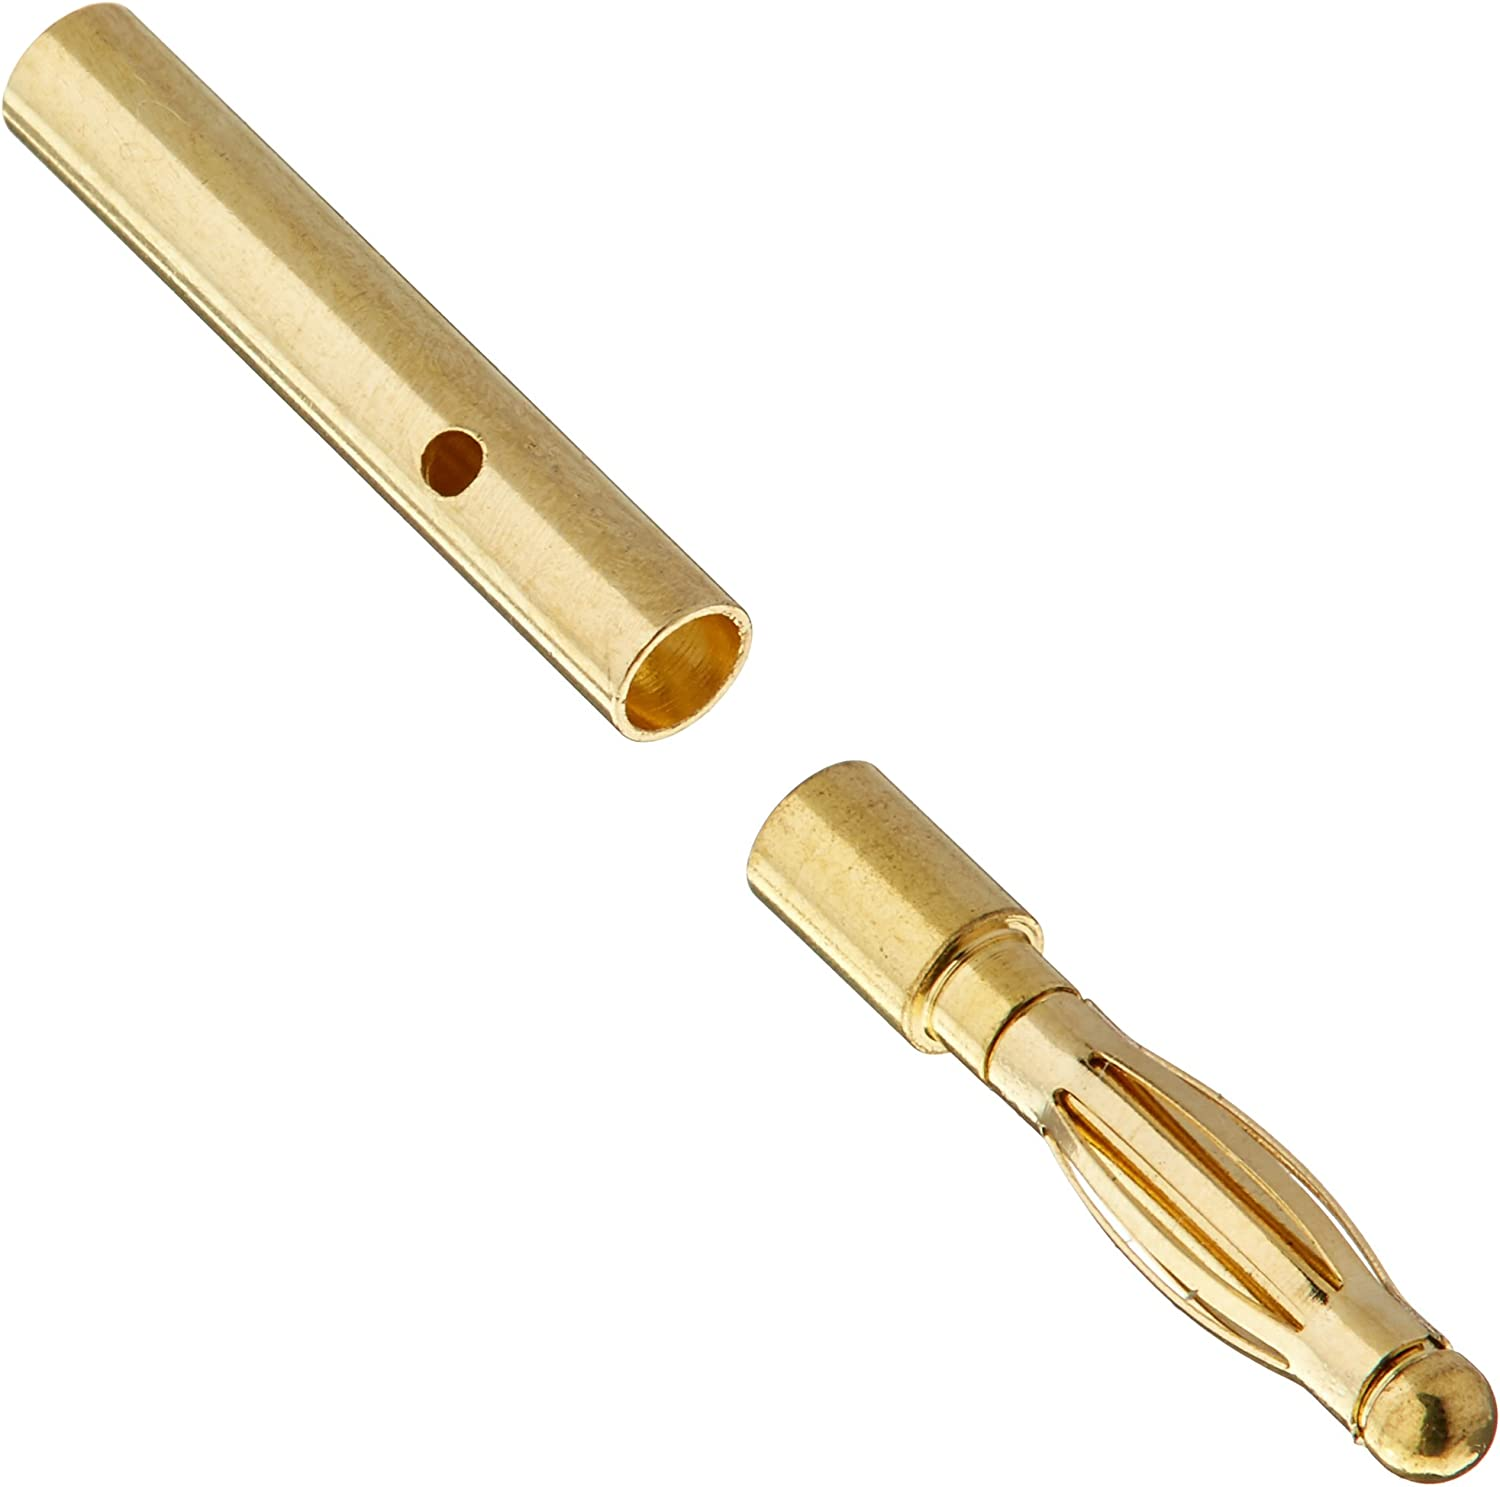 DYN DYNC0086 gold Bullet Connector Set 2mm (10) RC Vehicle Parts